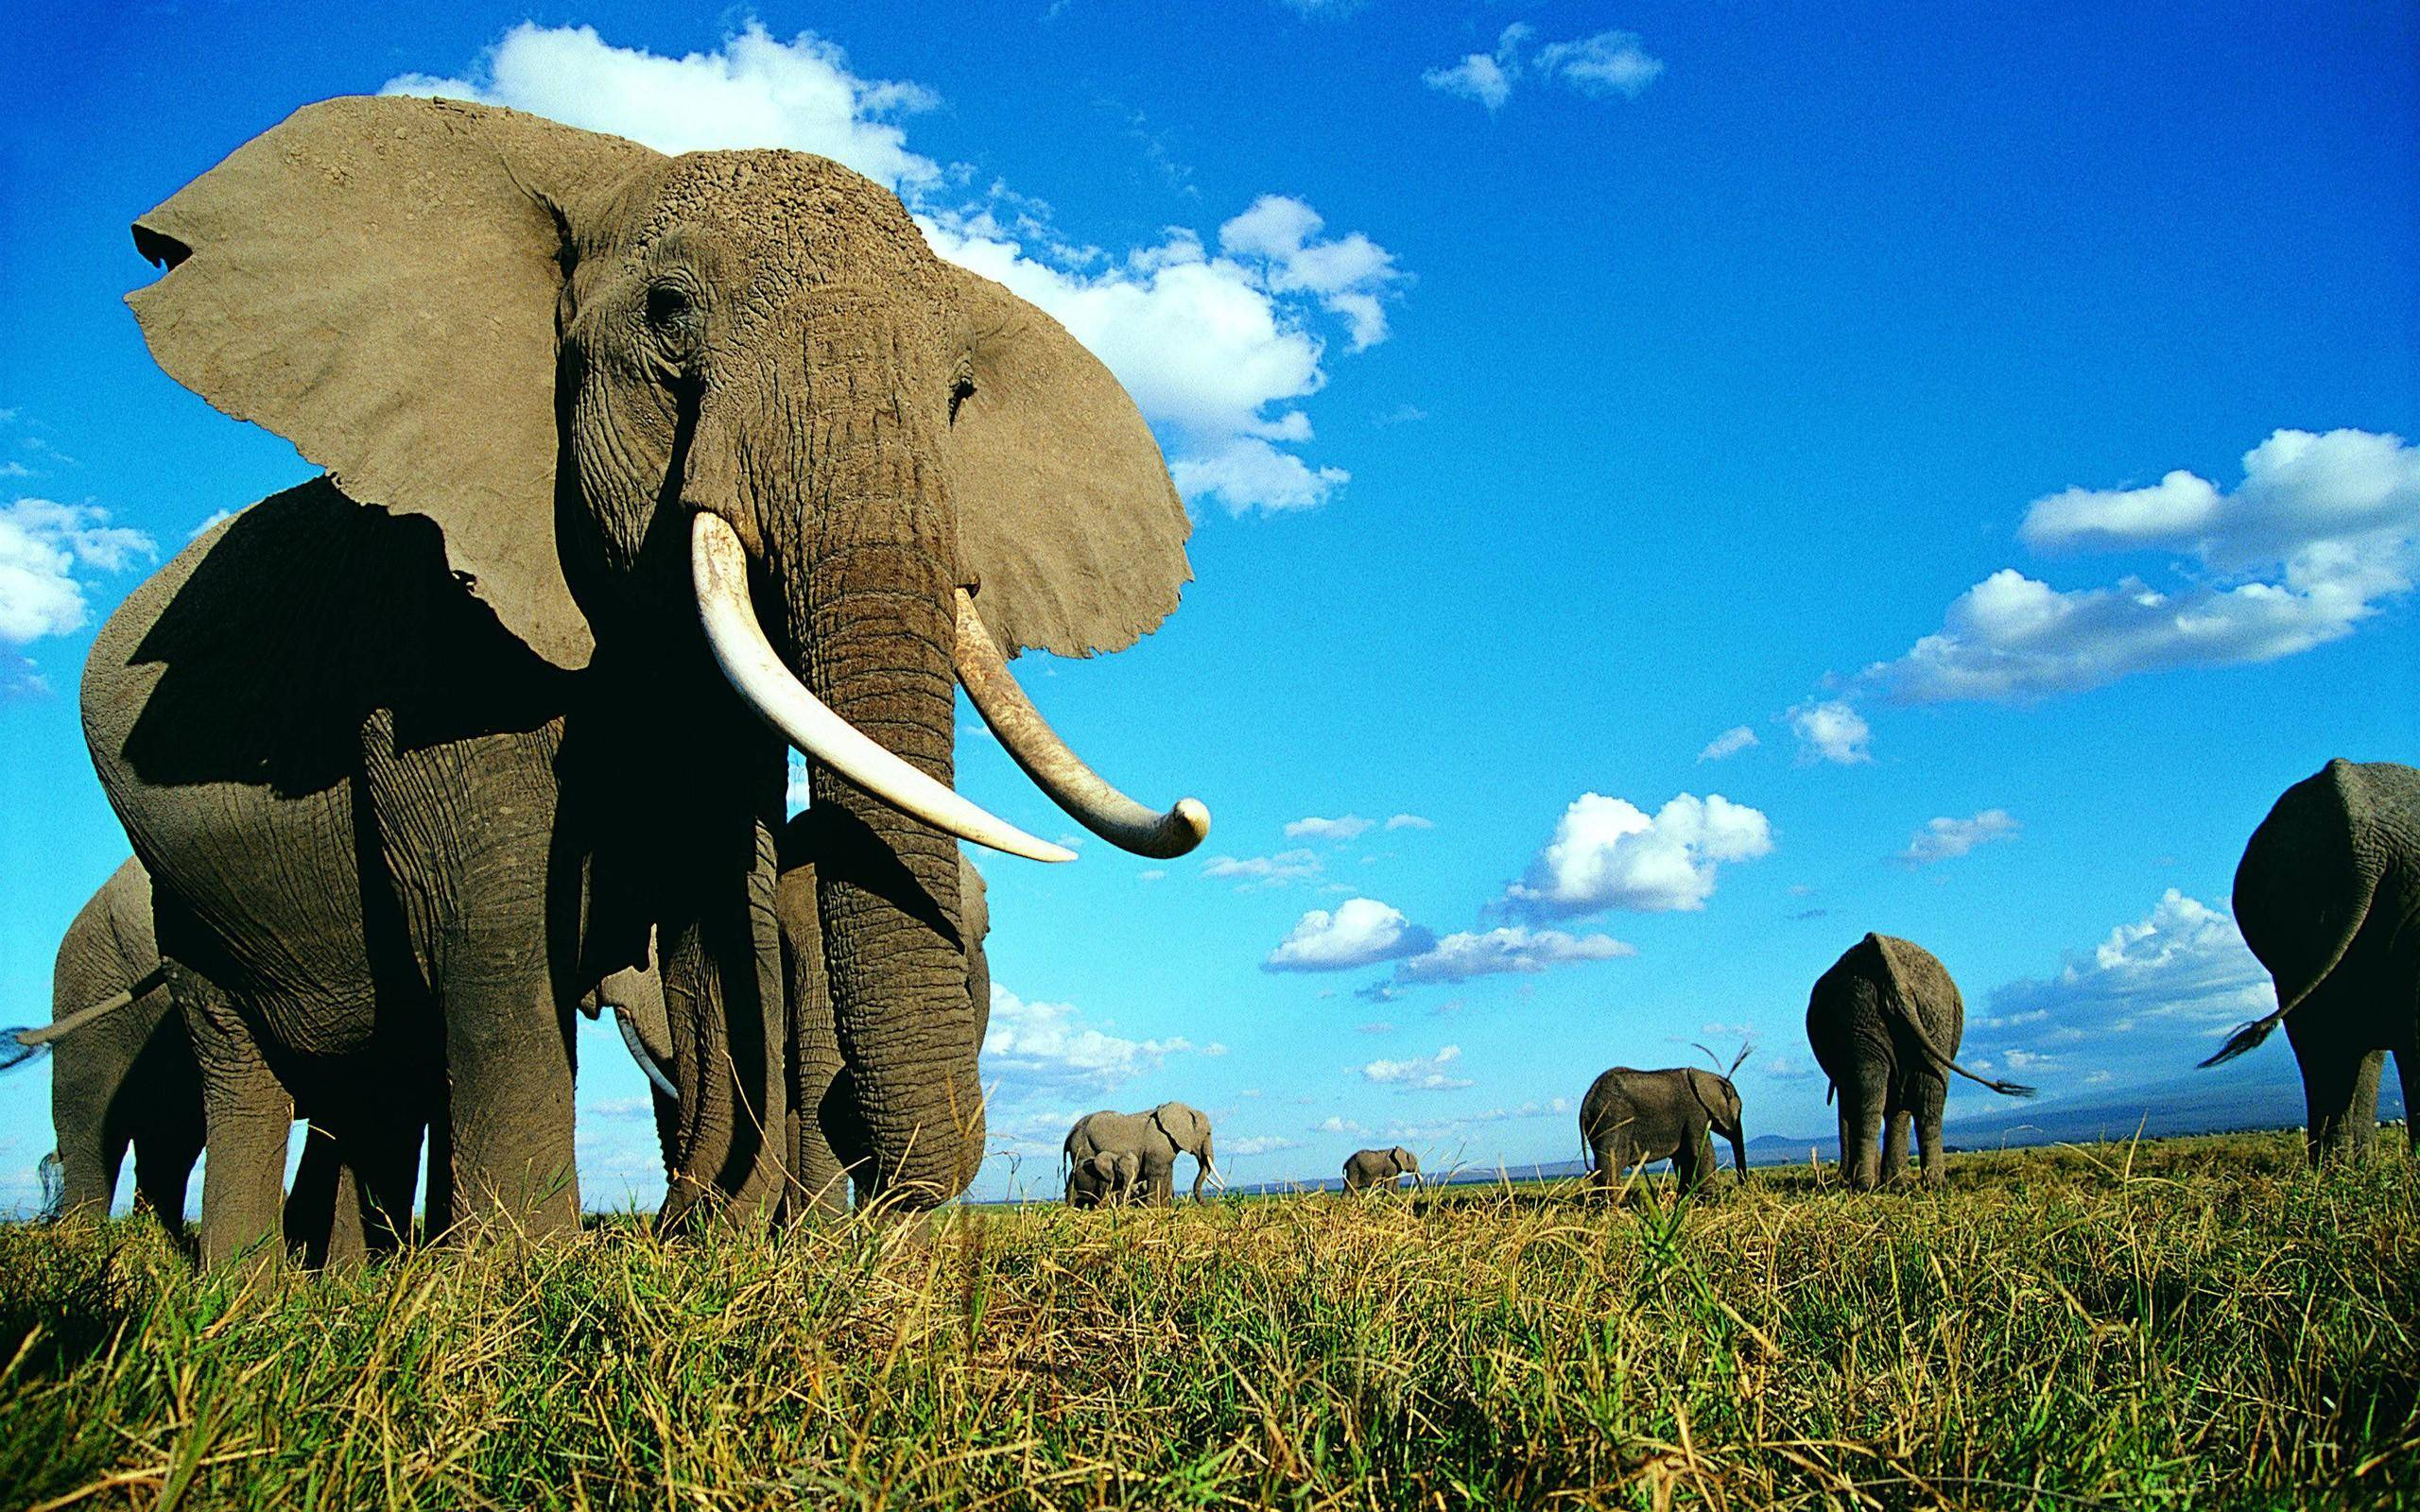 Wallpaper download elephant - Wallpapers For Indian Elephant Background